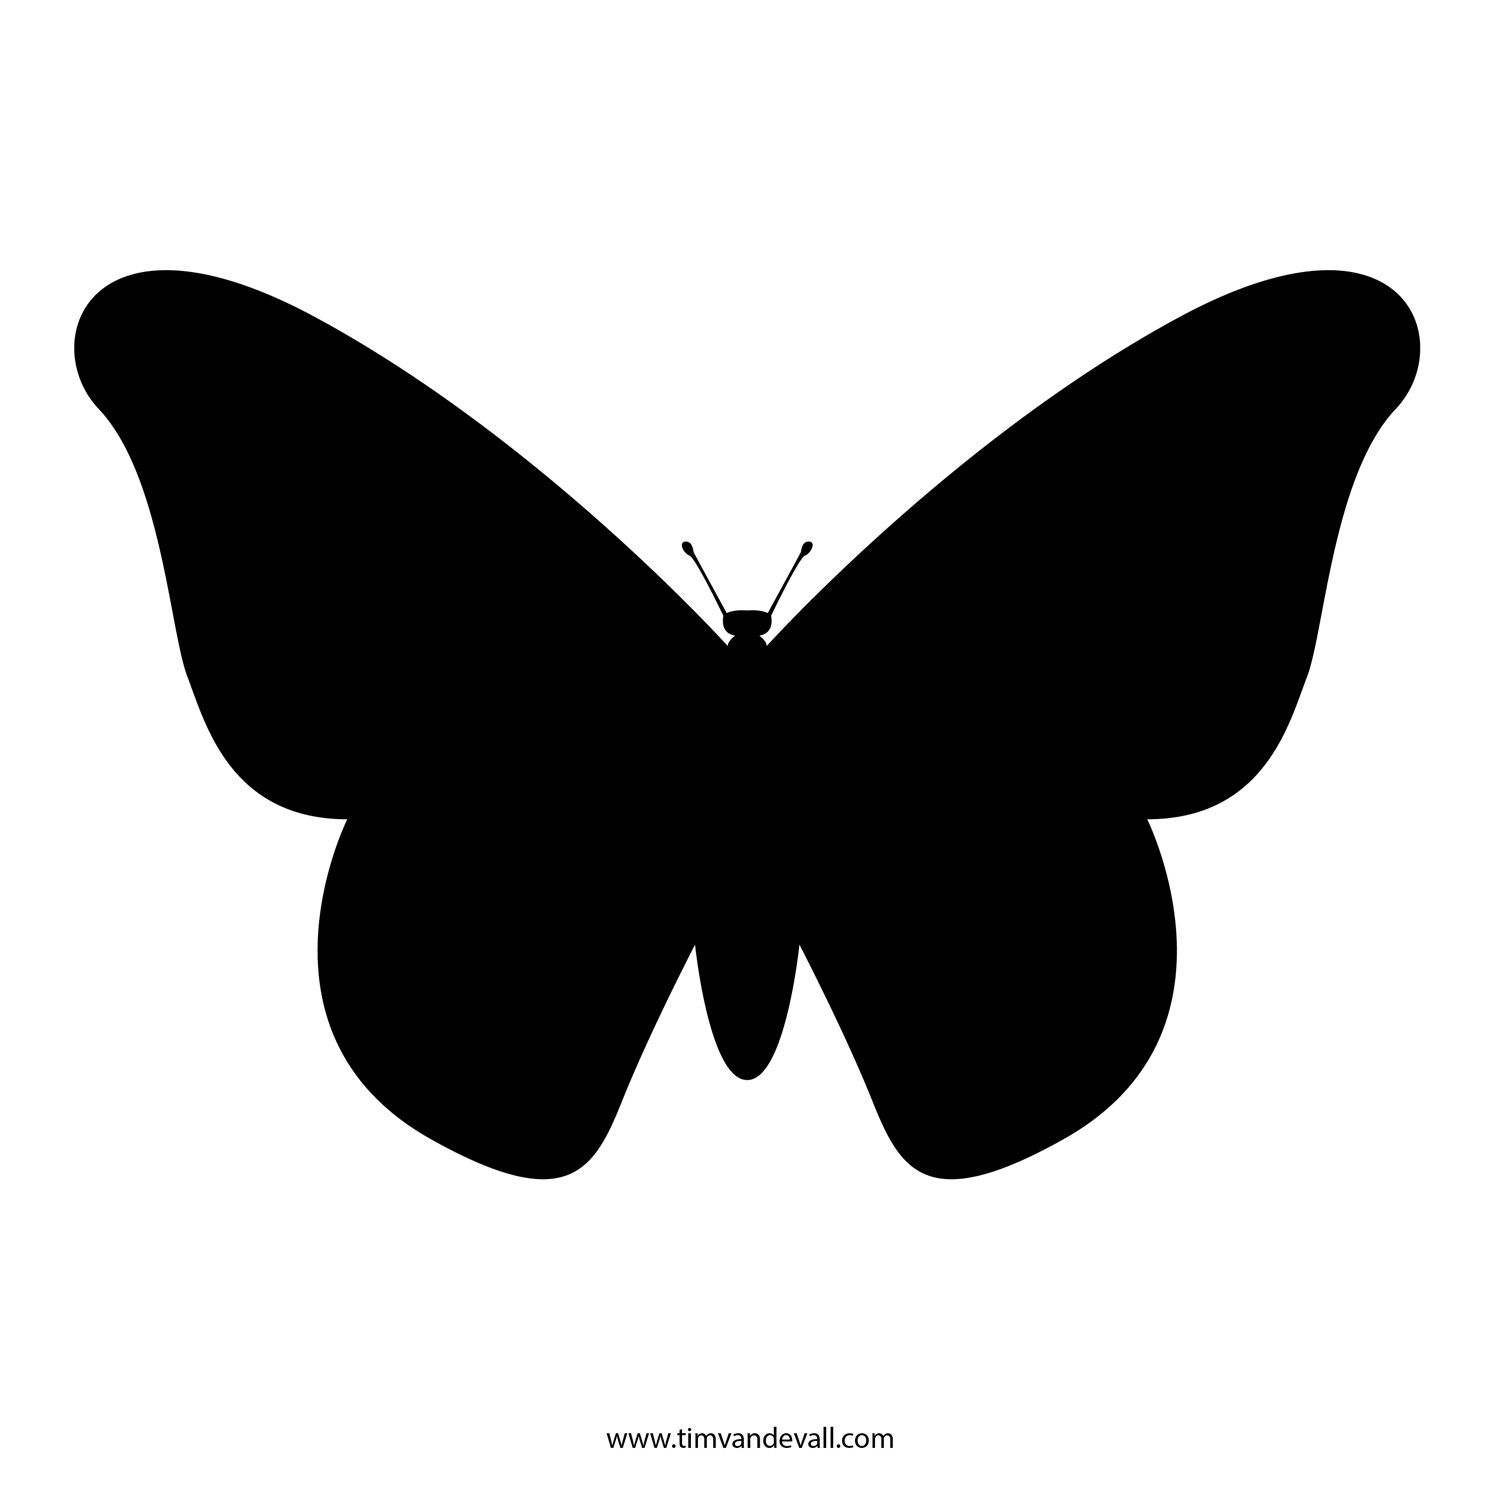 photograph relating to Butterfly Stencils Printable called Butterfly Stencils Printable No cost Butterfly Stencil